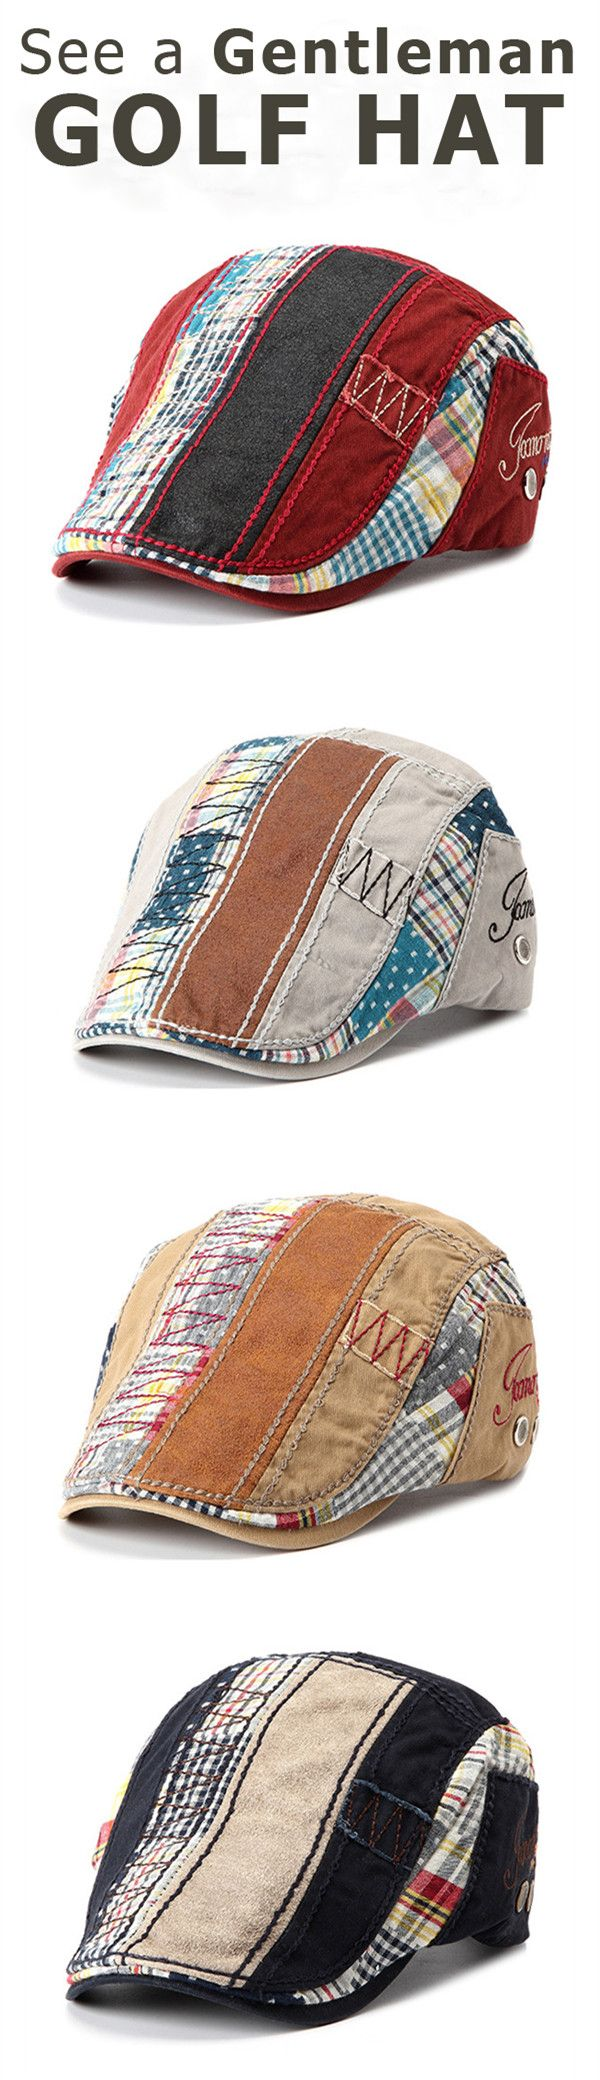 US$8.88+Free shipping. Mens Fashion, Golf Hat, Cowboy hat, Crochet hats, Baseball hat. Love this outdoor and sports style of hat. Material: Cotton+Polyester. Color: Wine Red, Gray, Dark Blue, Beige, Black. Features: Buckle, Adjustable.